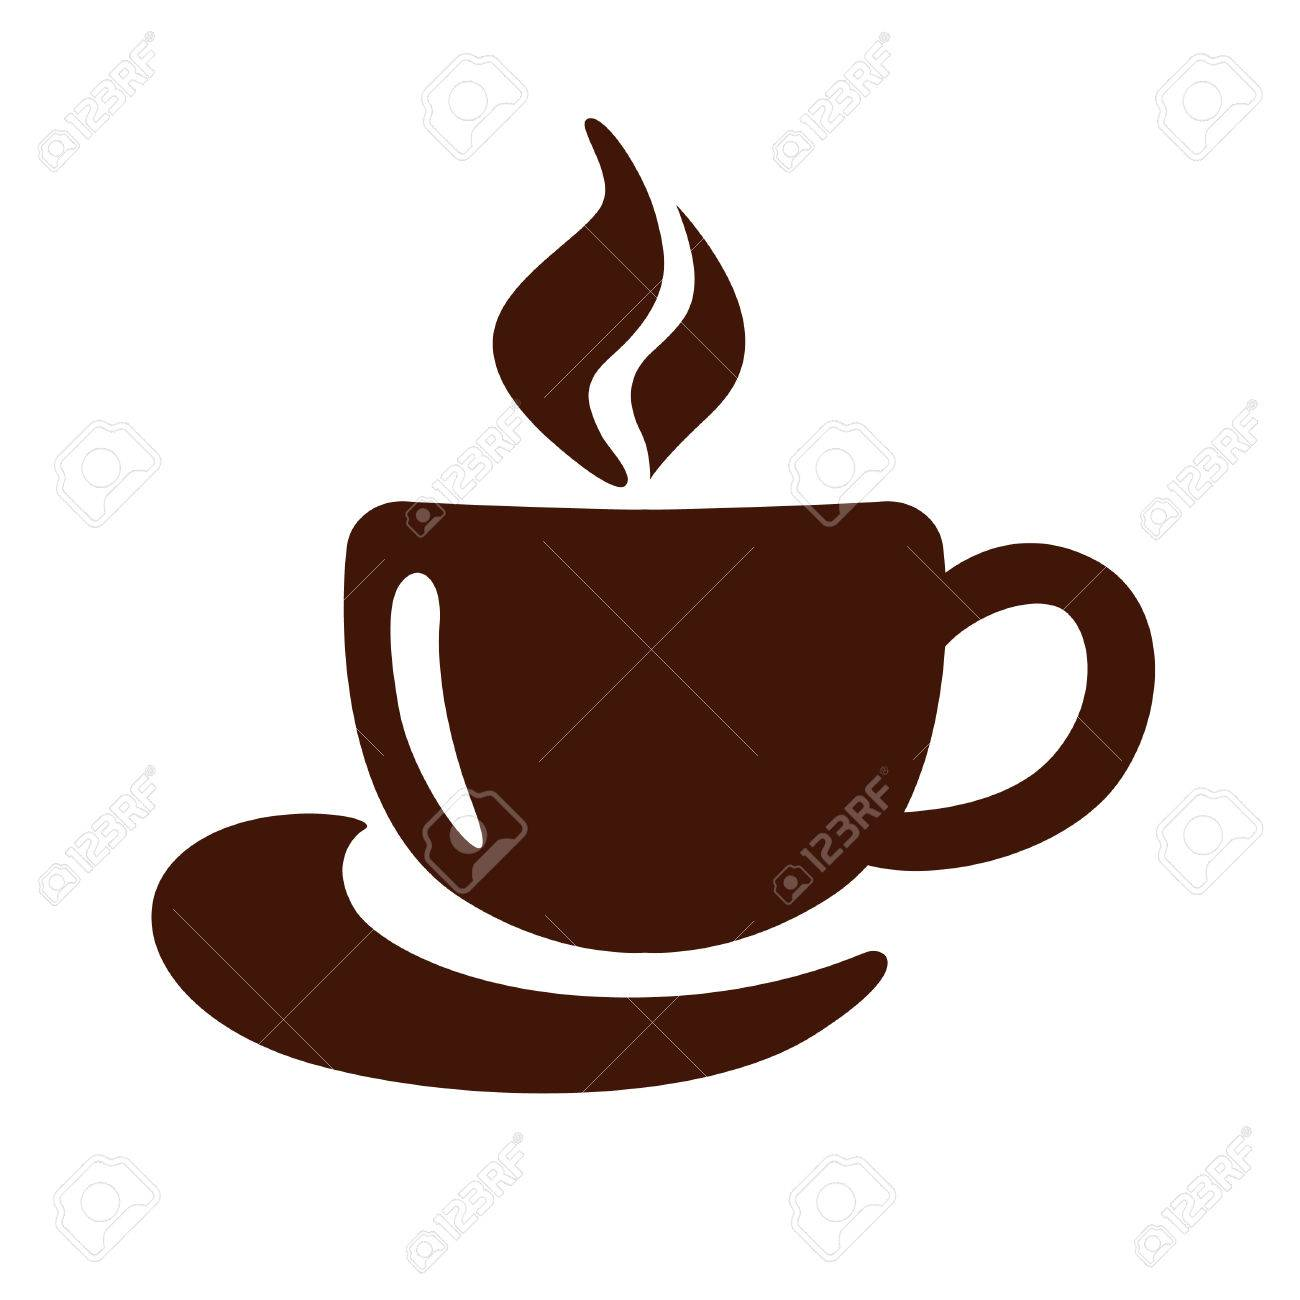 Stylized Image Of A Cup Of Coffee With Steam And Saucer Sign Royalty Free Cliparts Vectors And Stock Illustration Image 67484636